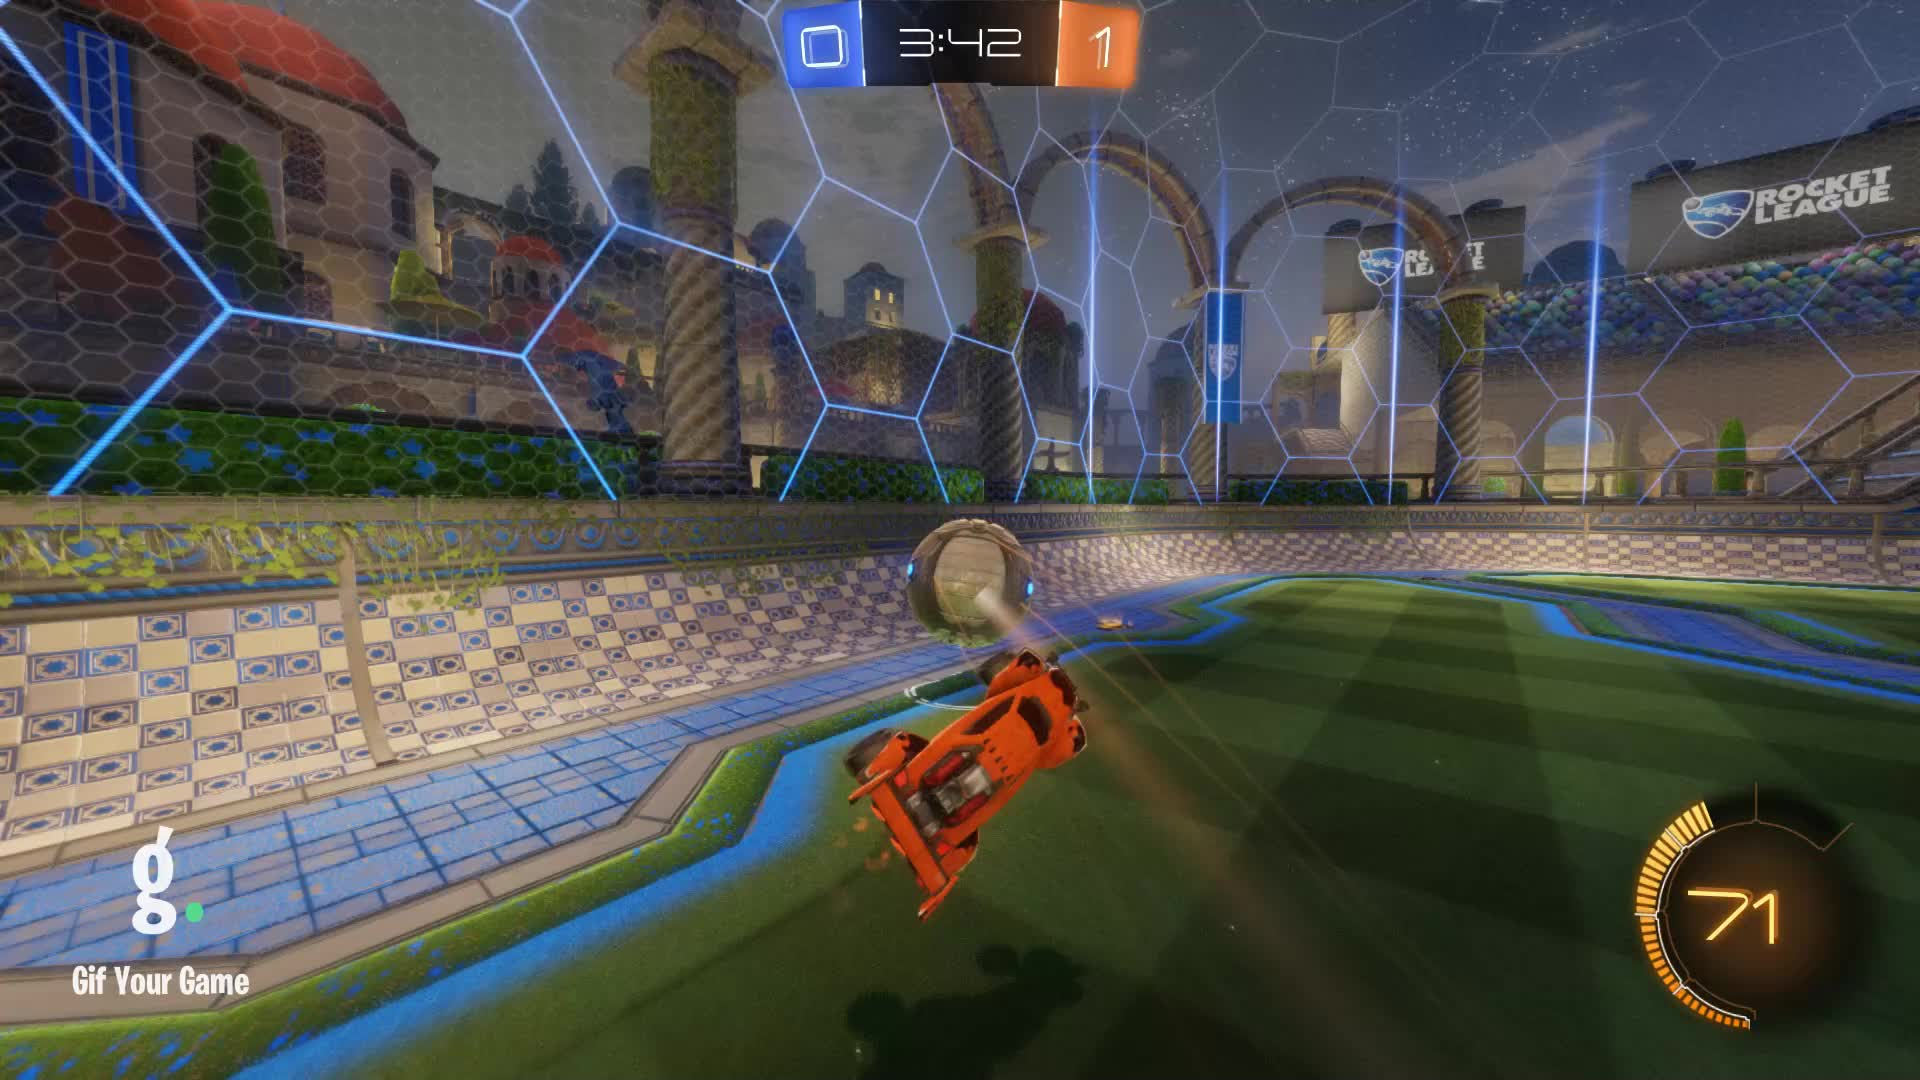 Assist, FallingSky, Gif Your Game, GifYourGame, Rocket League, RocketLeague, Assist 1: FallingSky GIFs